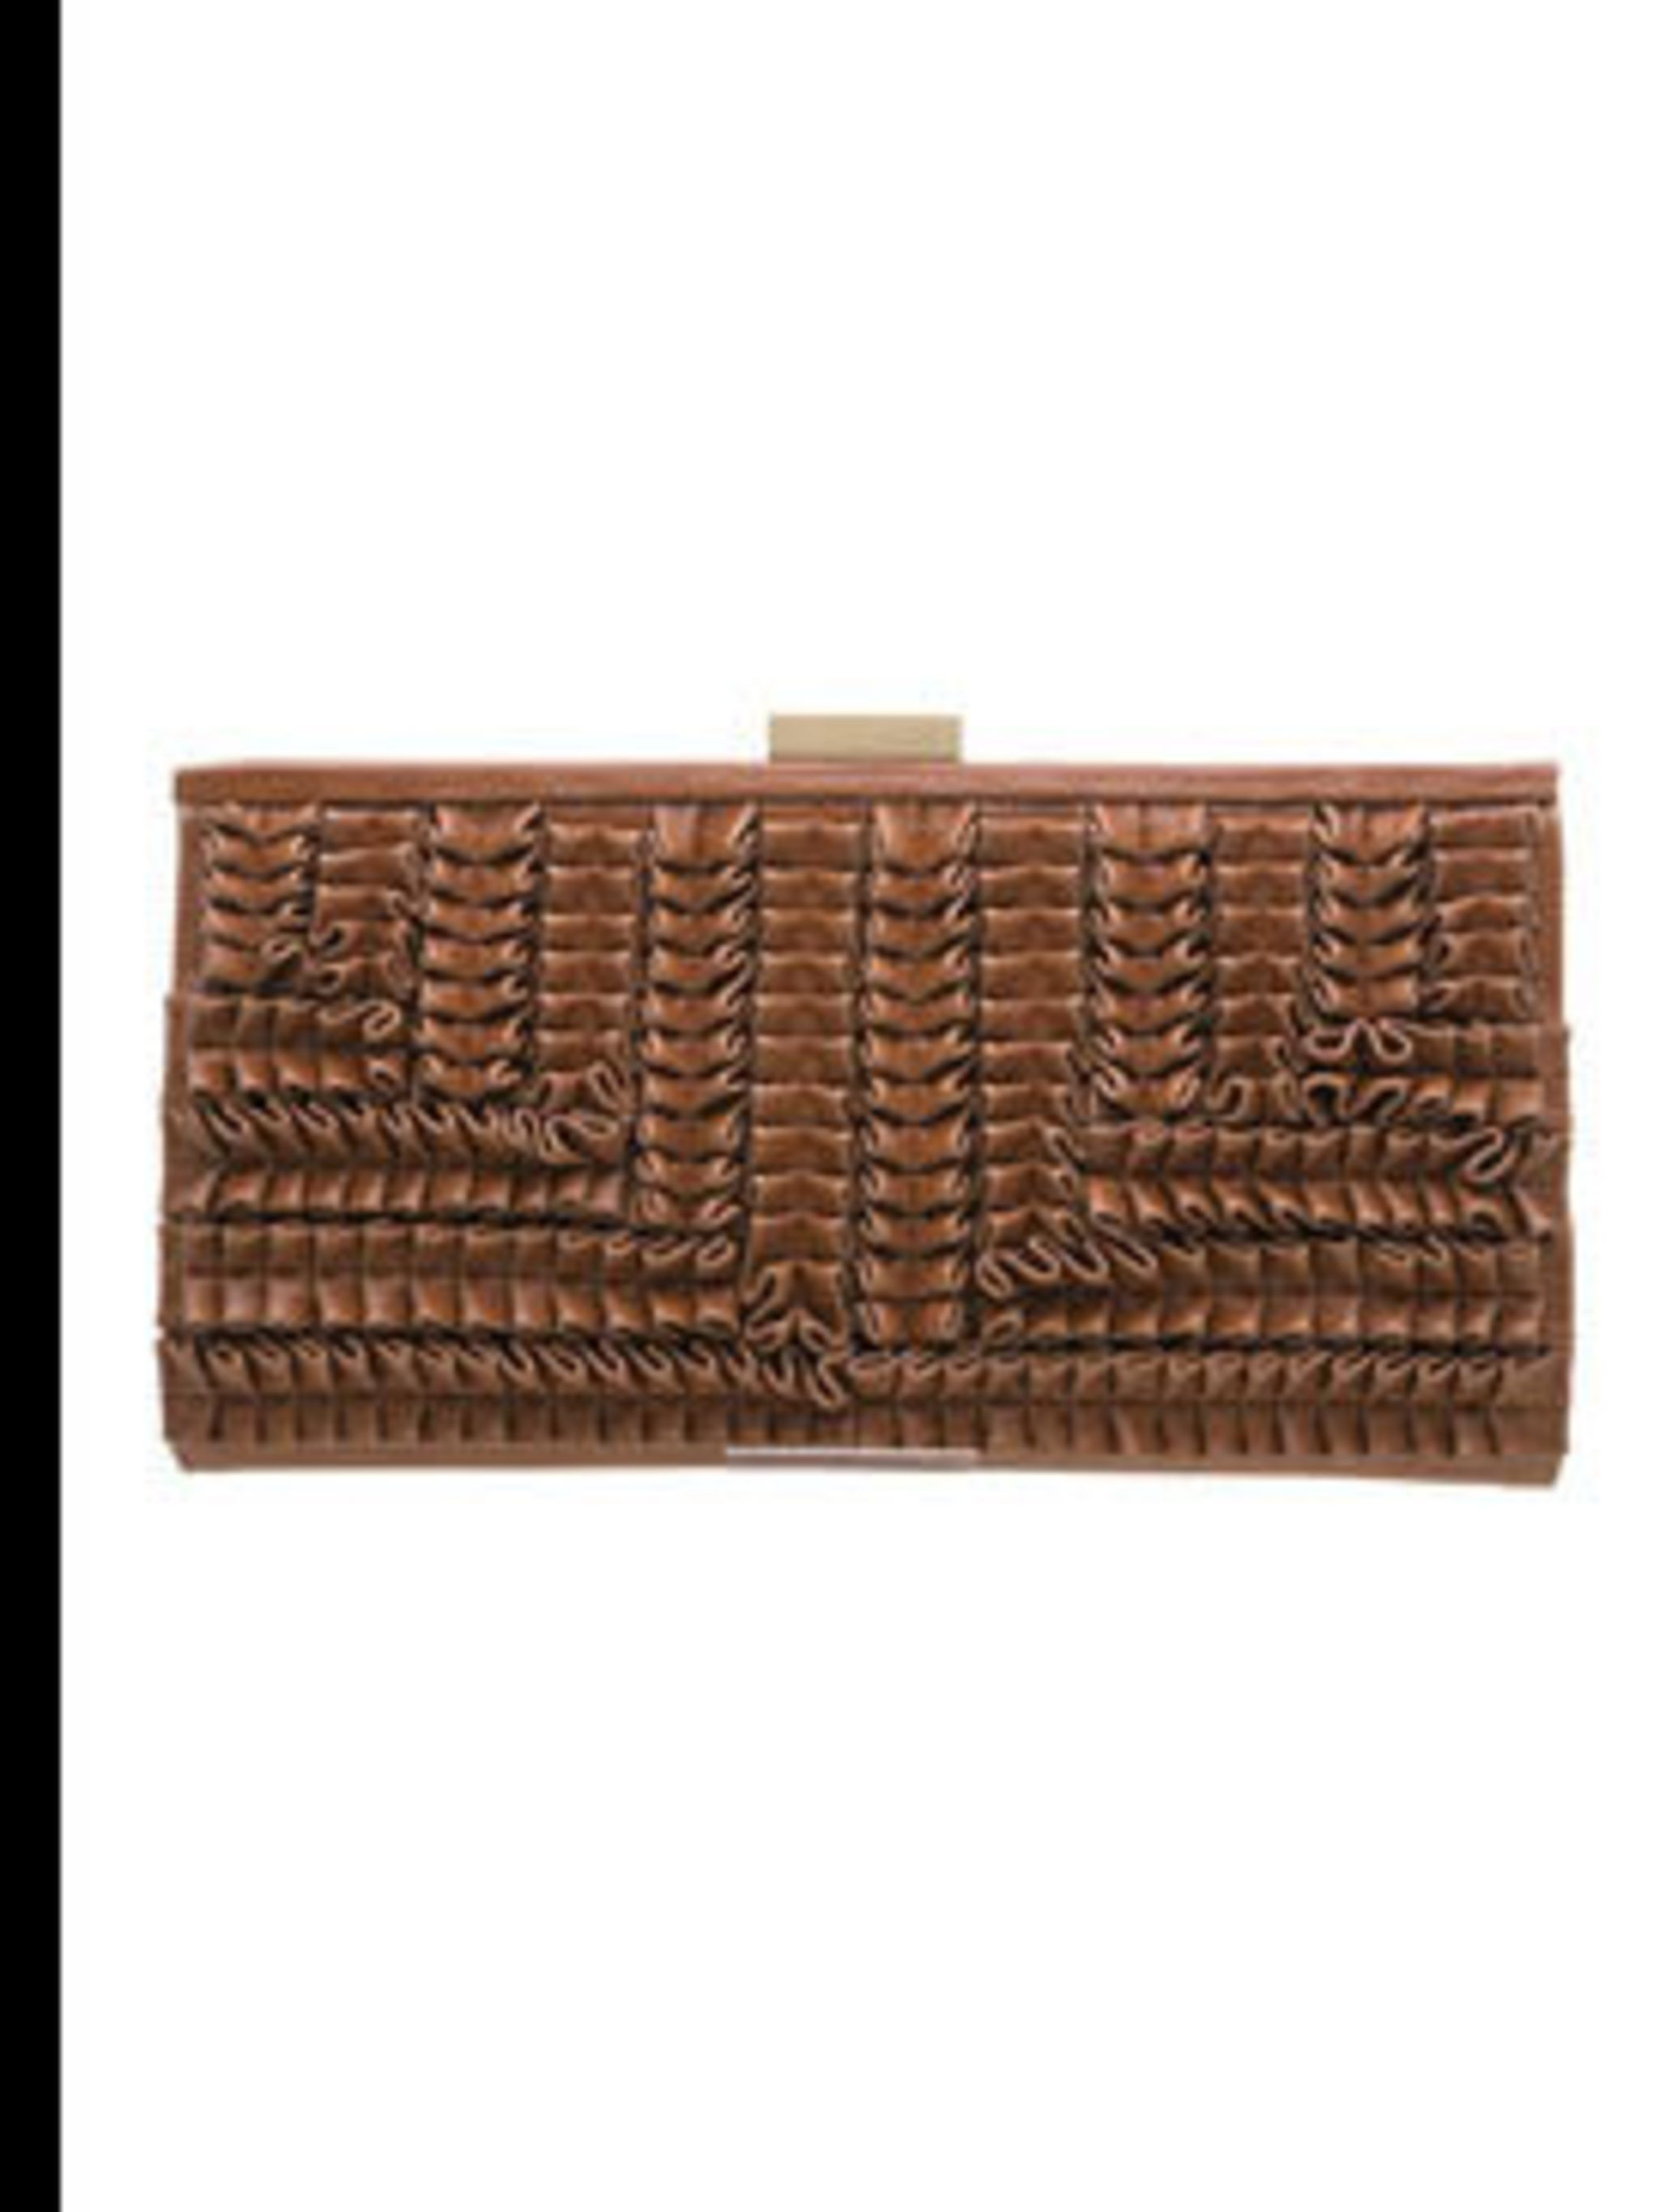 "<p>Clutch bag, £45 by <a href=""http://www.dune.co.uk/catalogue/style.asp?r=46&g=45&s=59&y=S09APU83BGM626N"">Dune</a></p>"